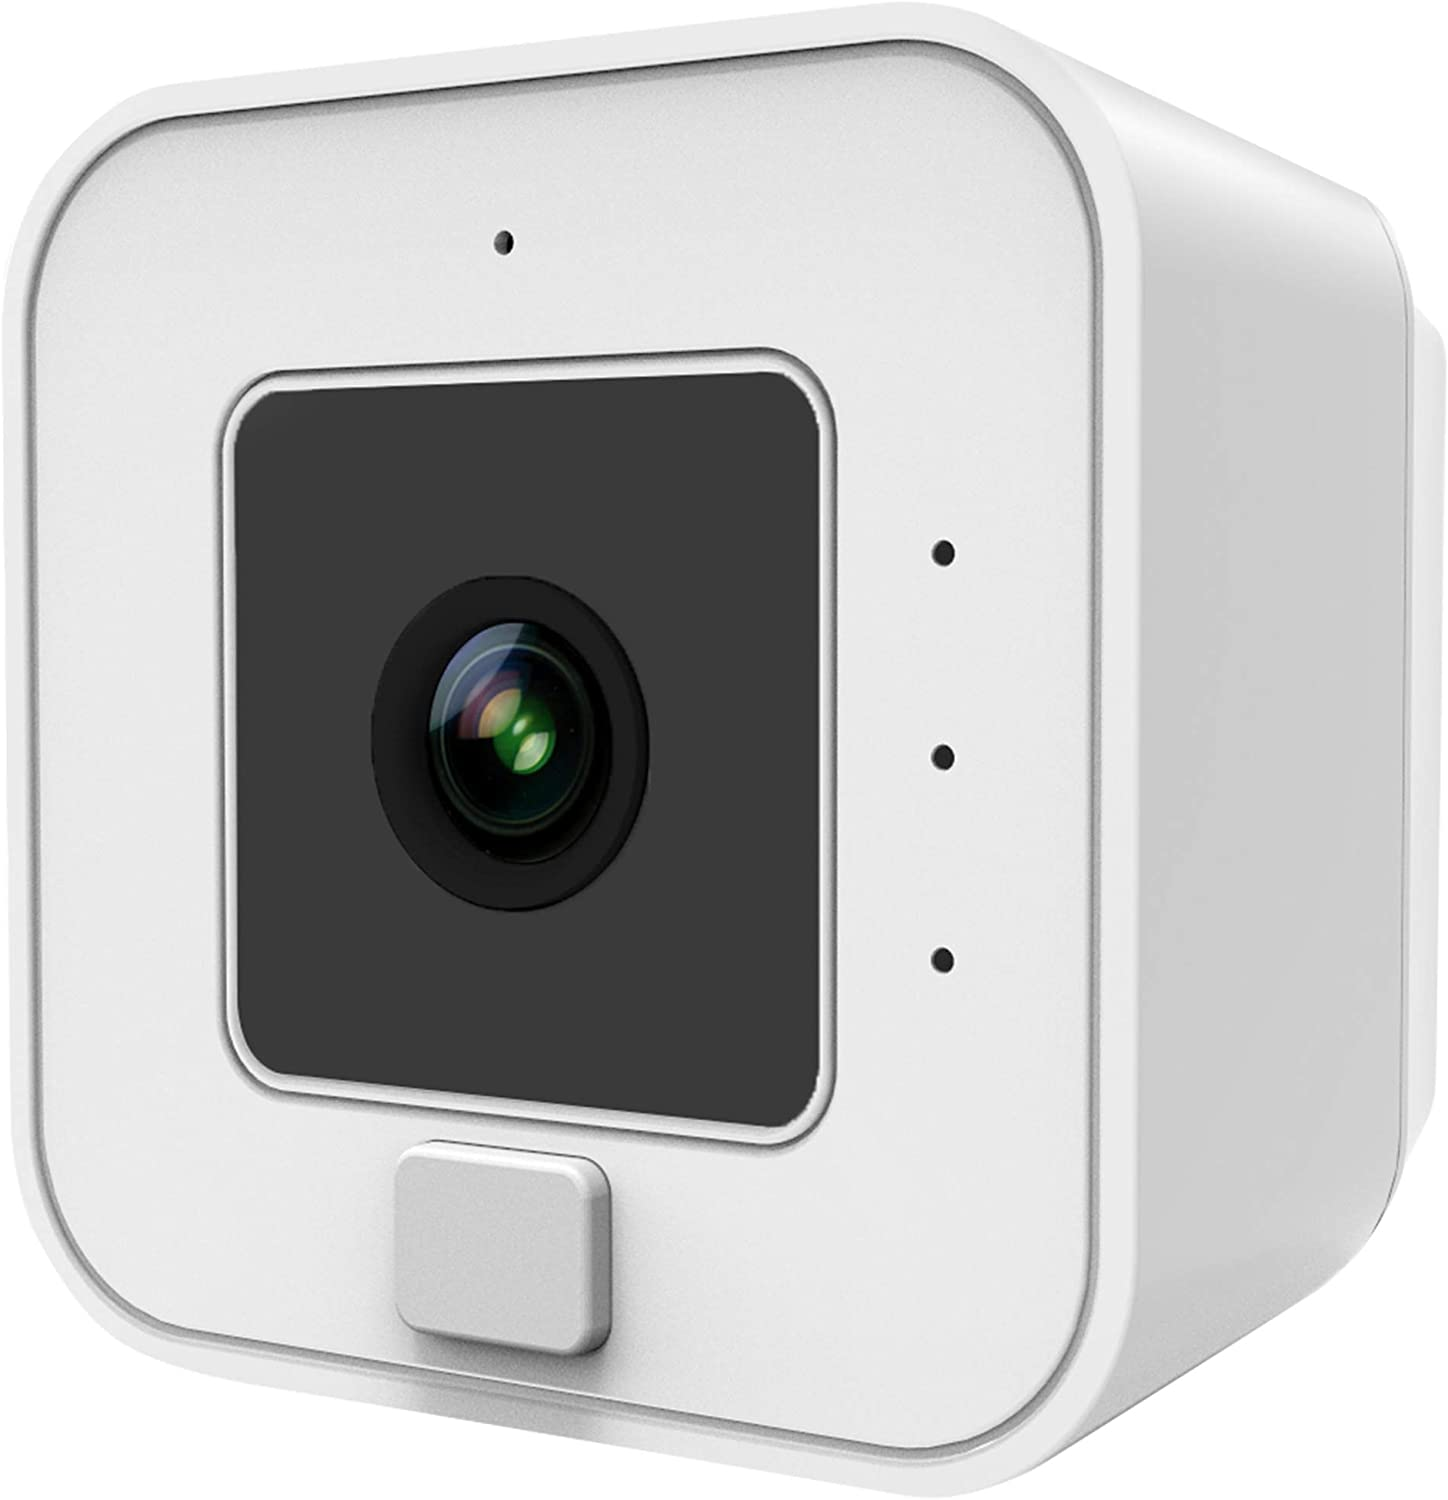 SimplySmart 買物 Home White 待望 SSC005 Cube Indoor 1080p Outdoor Full HD